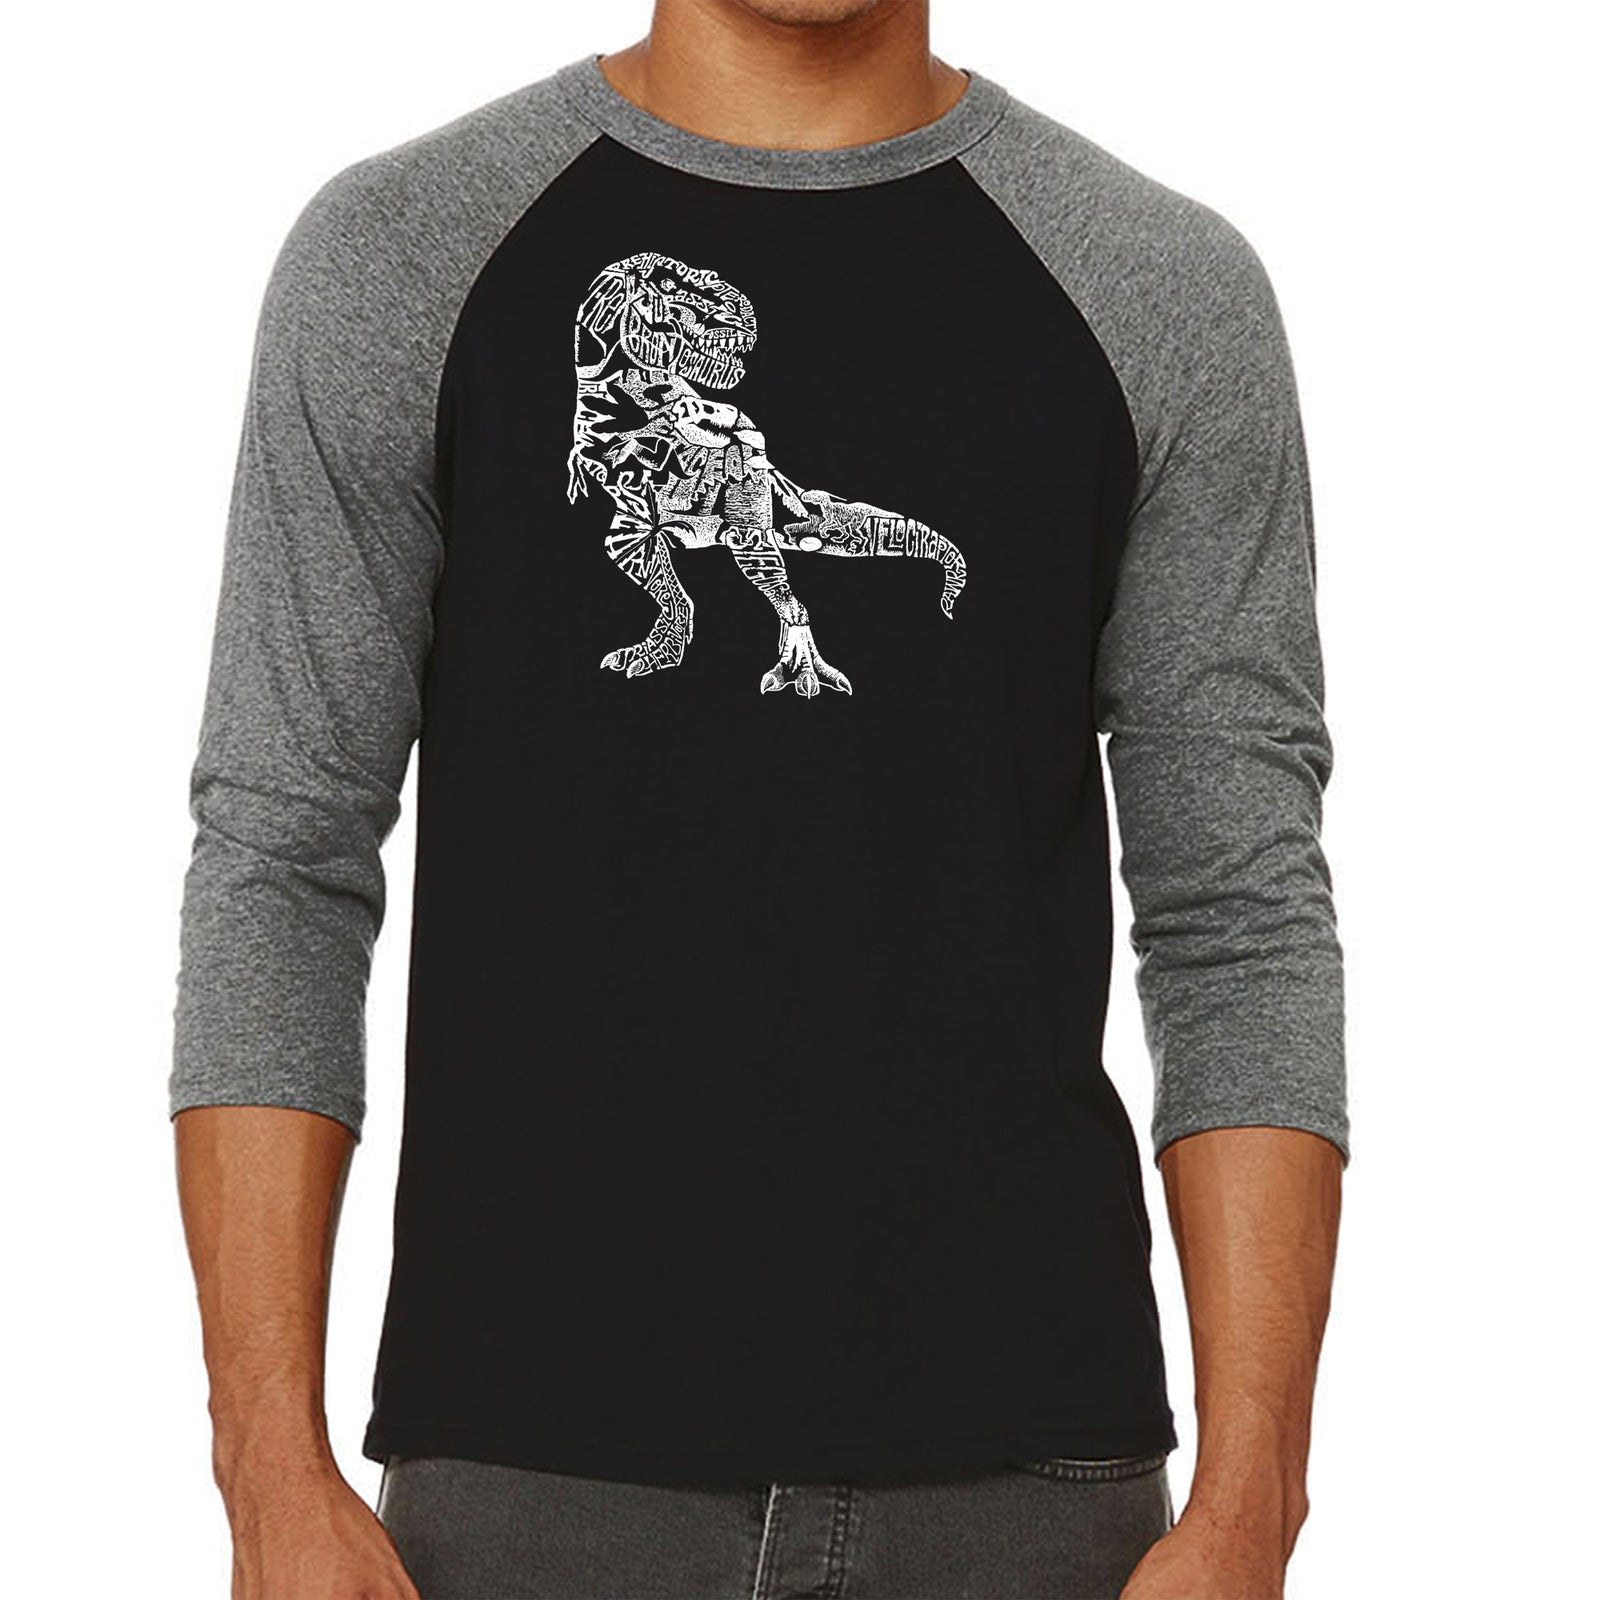 Men's Raglan Baseball Word Art T-shirt - Dino Pics